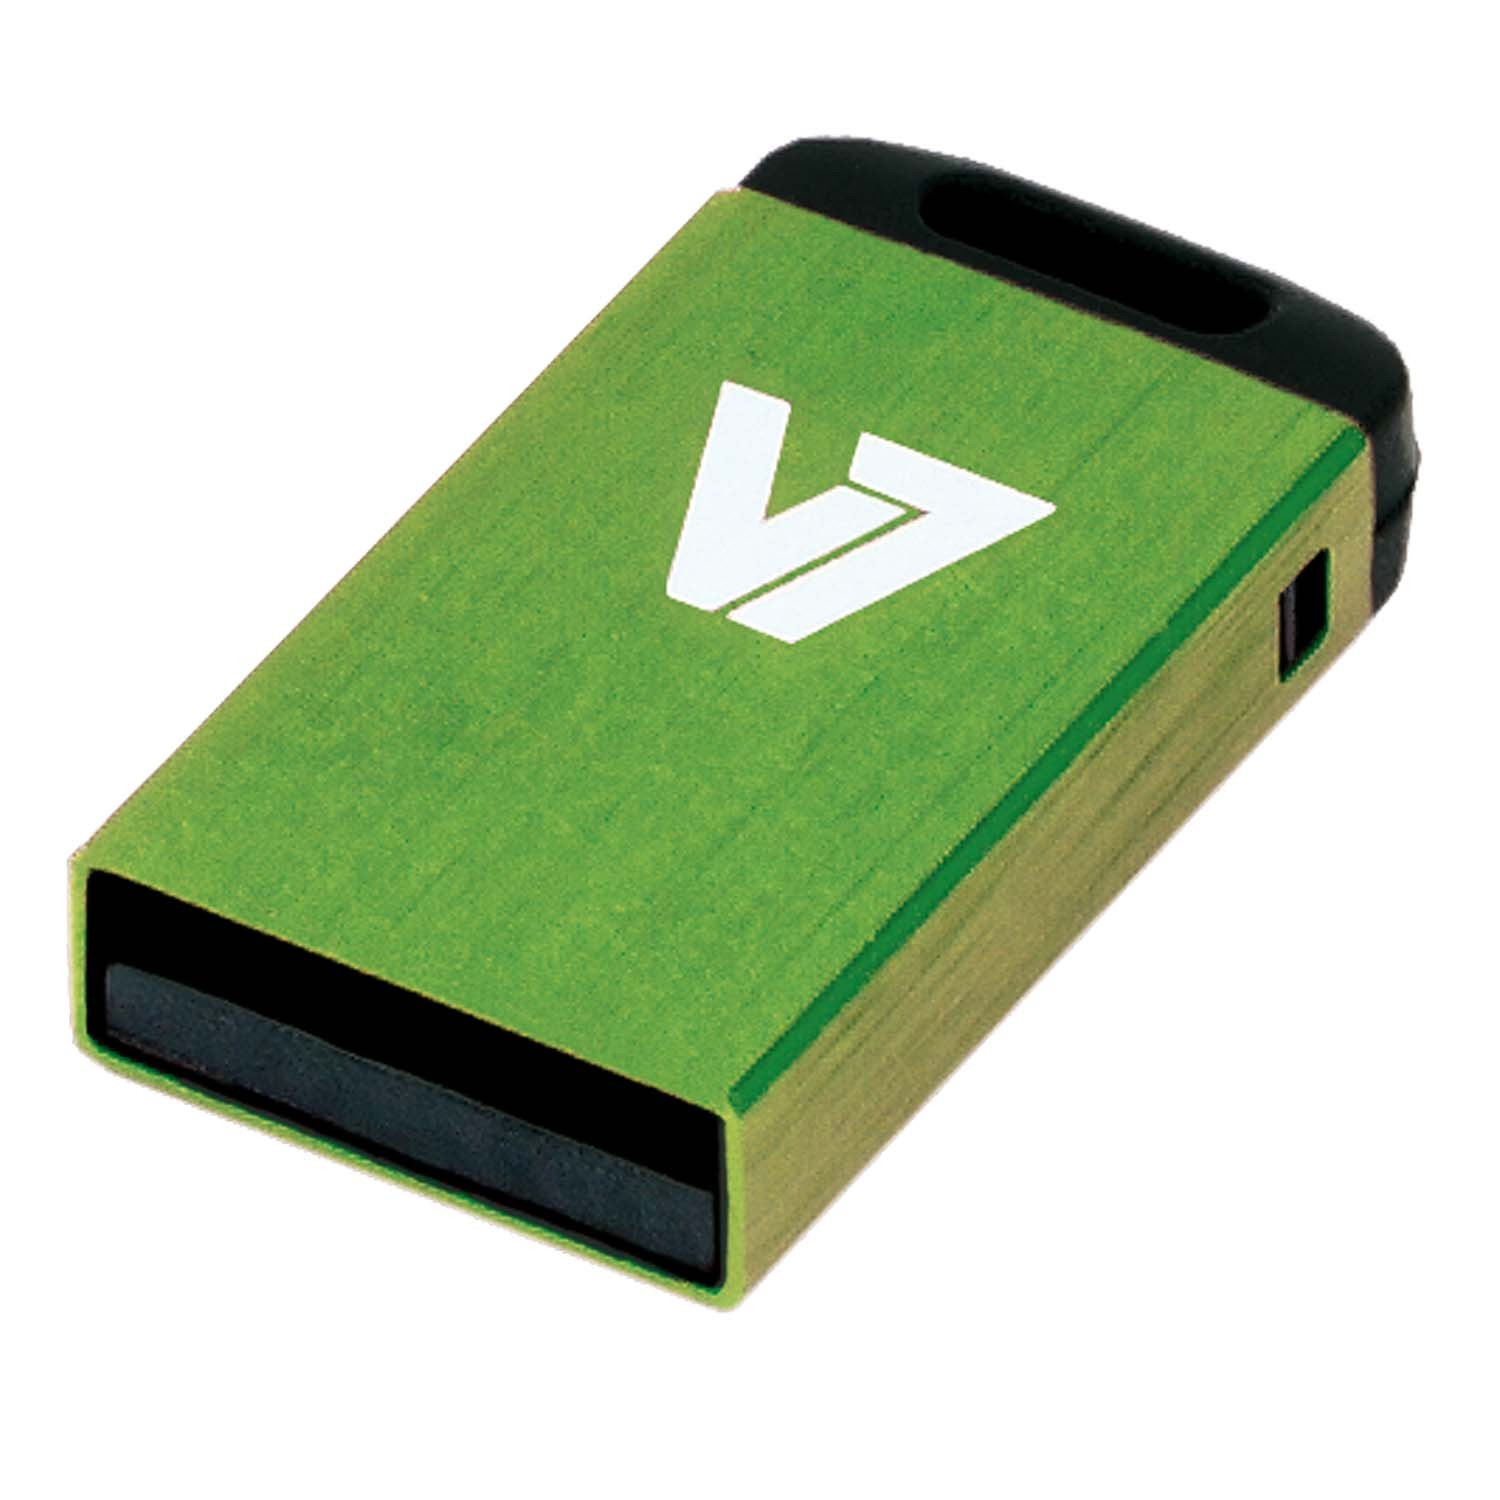 V7 VU232GCR-GRE-2E - Nano USB-Flash-Laufwerk - 32 GB